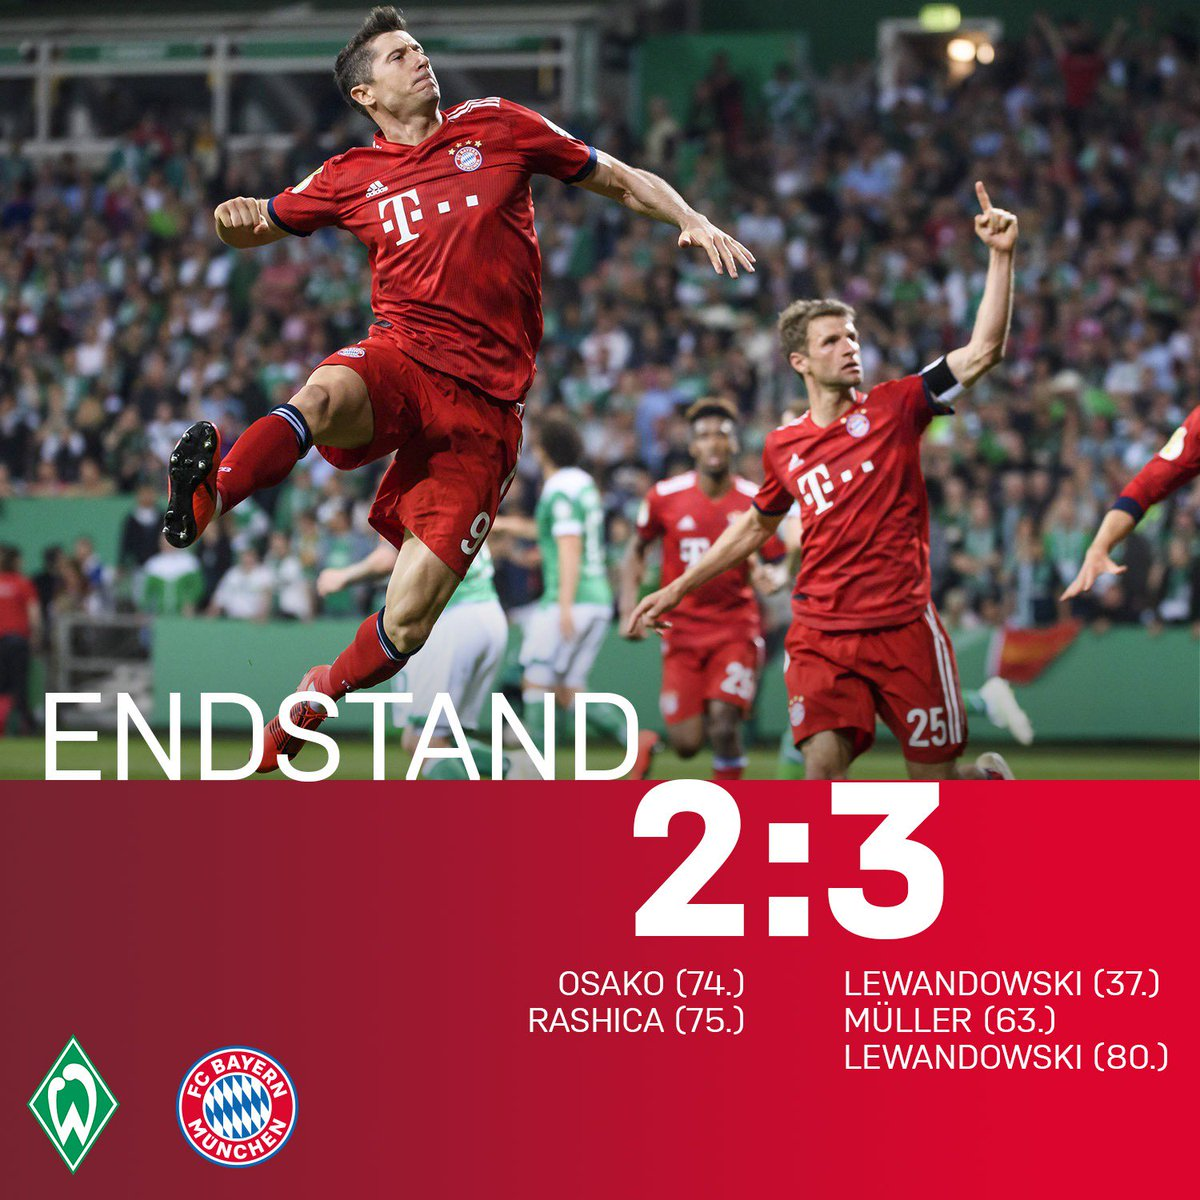 FC Bayern München's photo on #SVWFCB